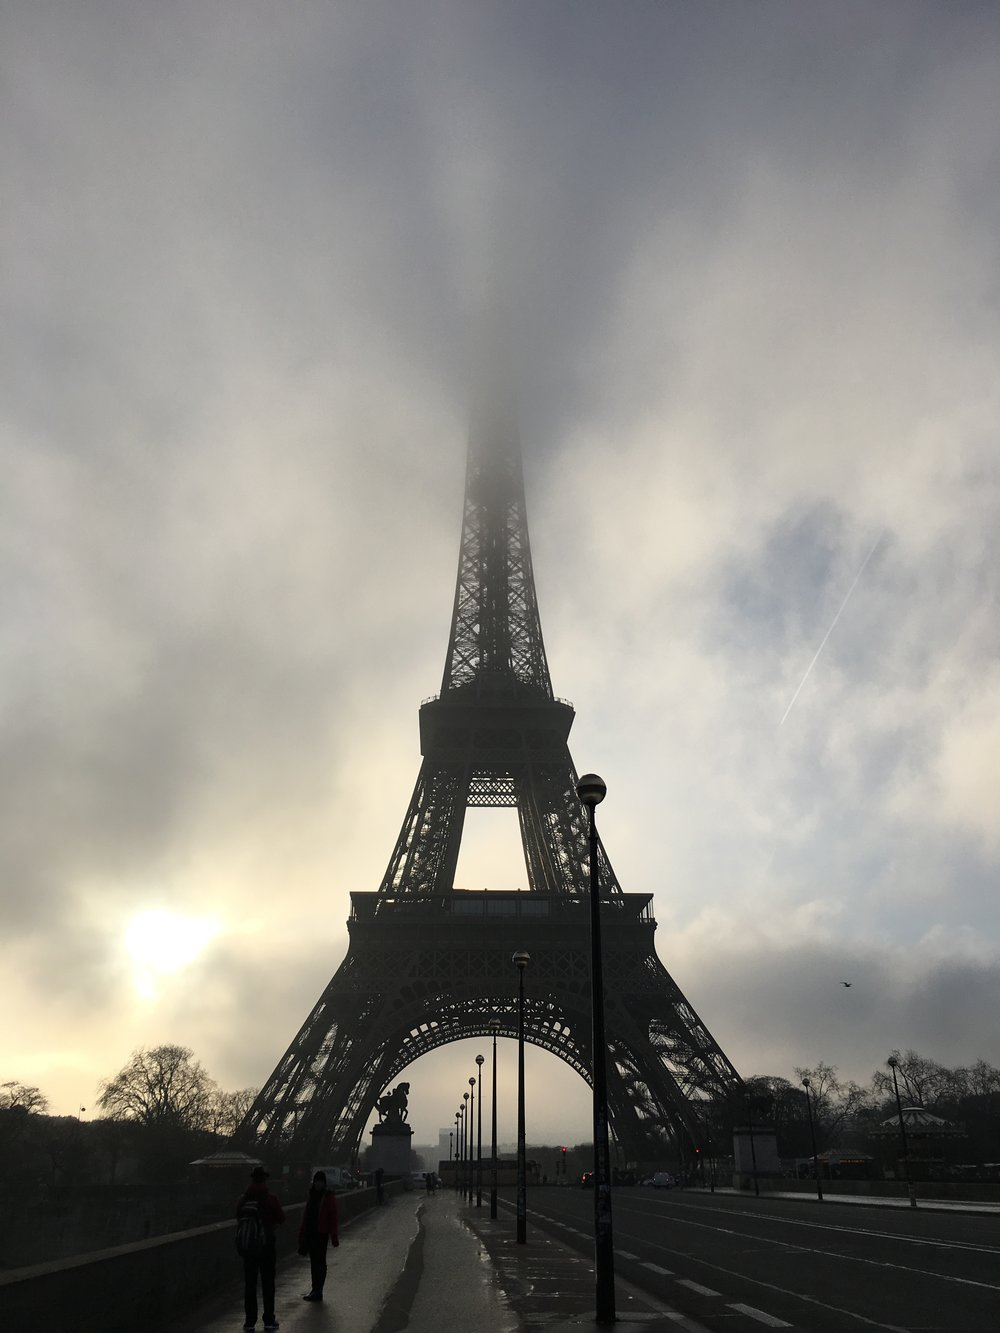 Paris_Eiffel Tower with fog.JPG